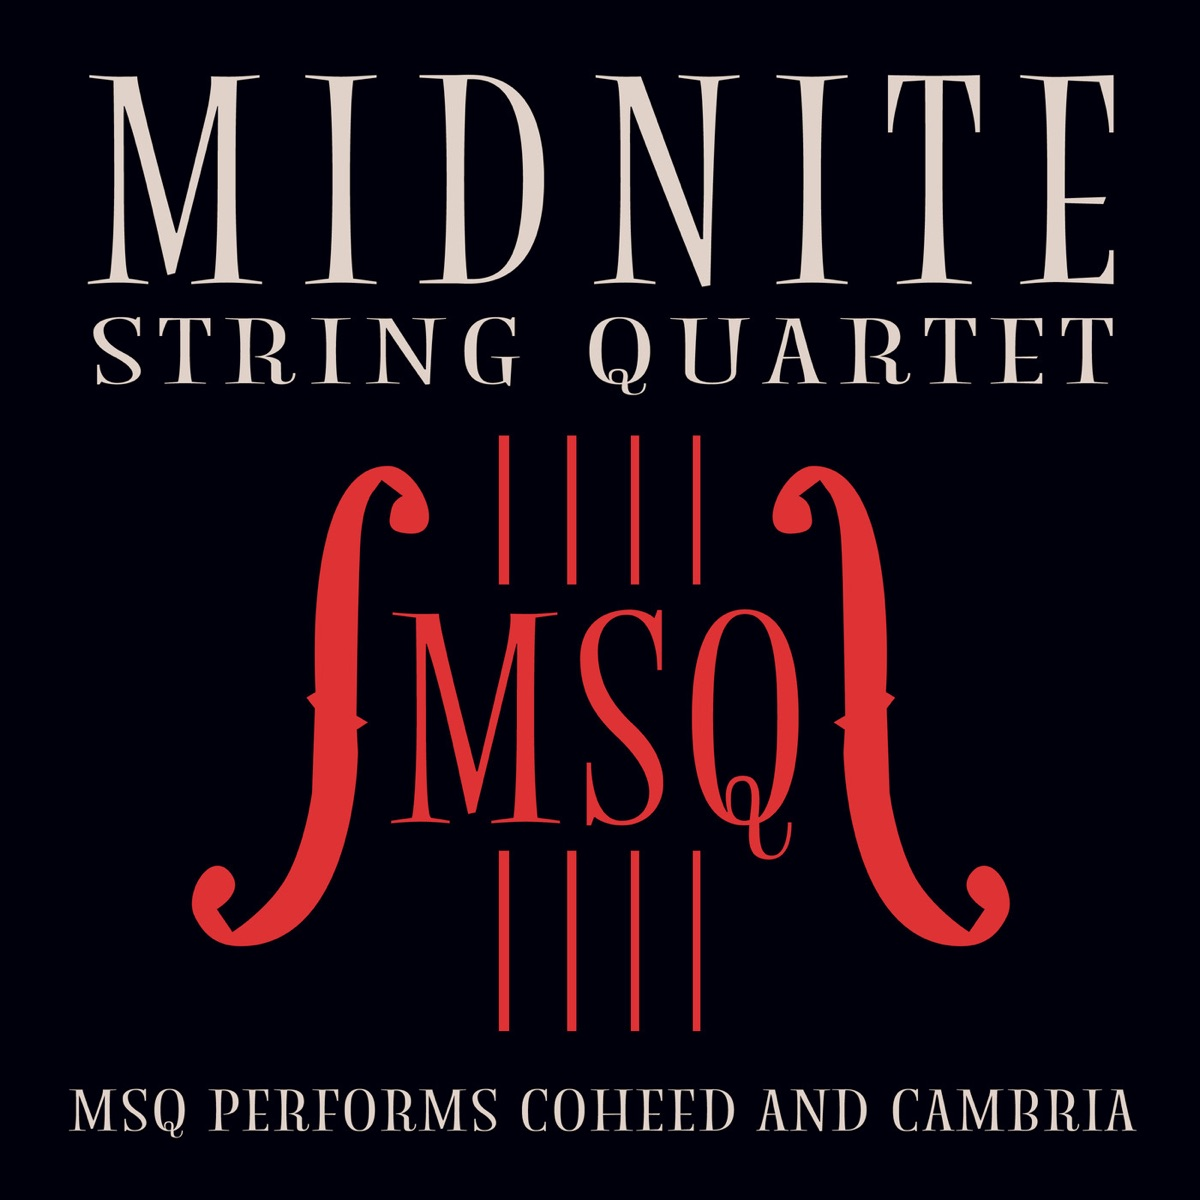 MSQ Performs Coheed and Cambria Midnite String Quartet CD cover